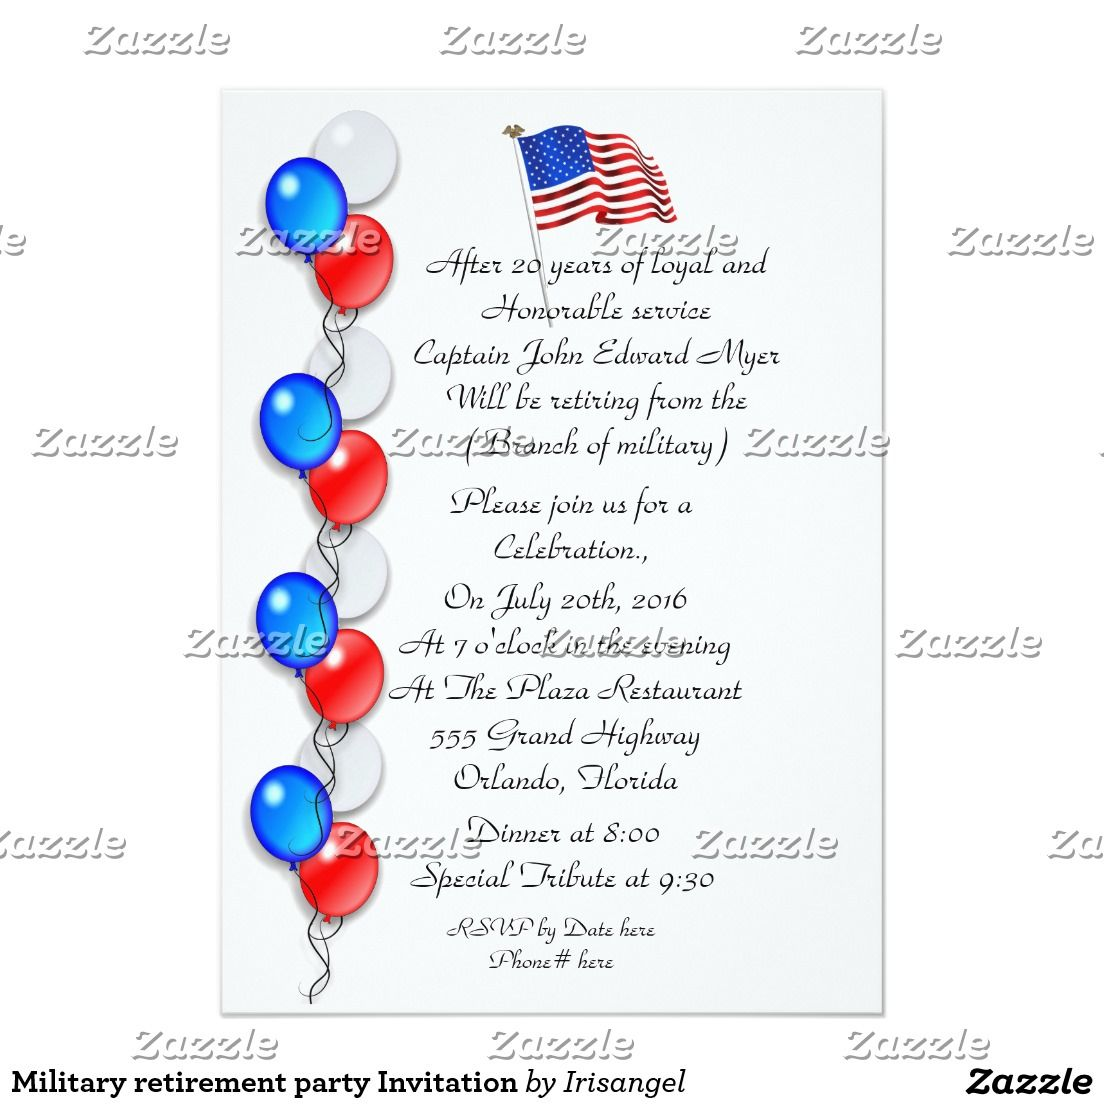 Military retirement party Invitation | Military retirement party ...